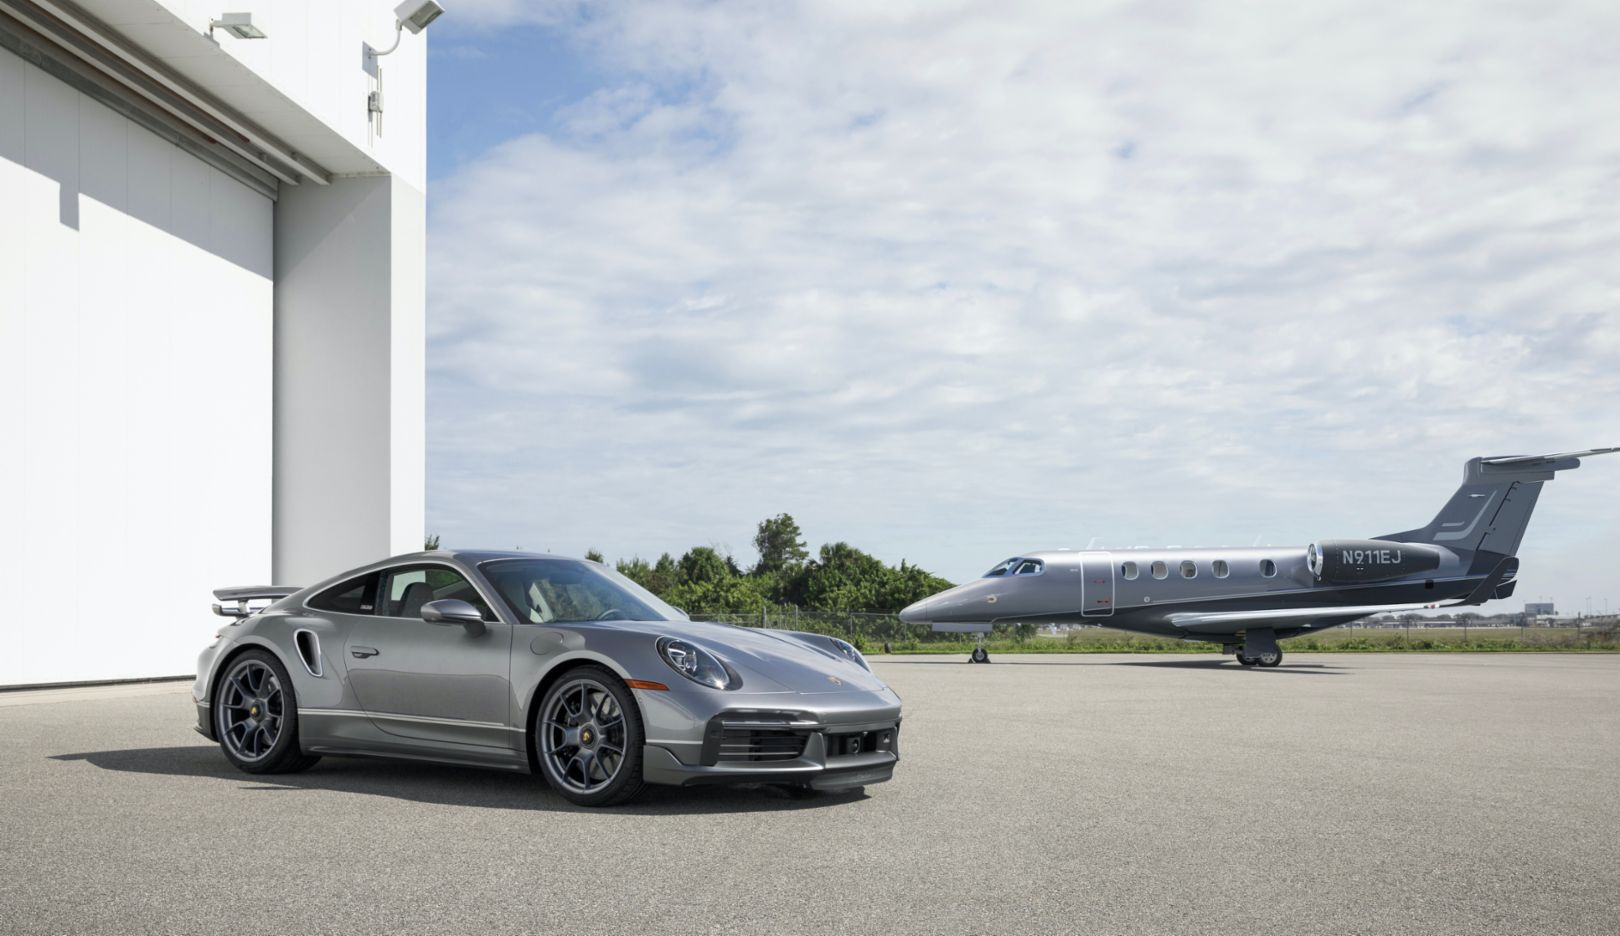 Porsche and Embraer present a duo of sports car and jet